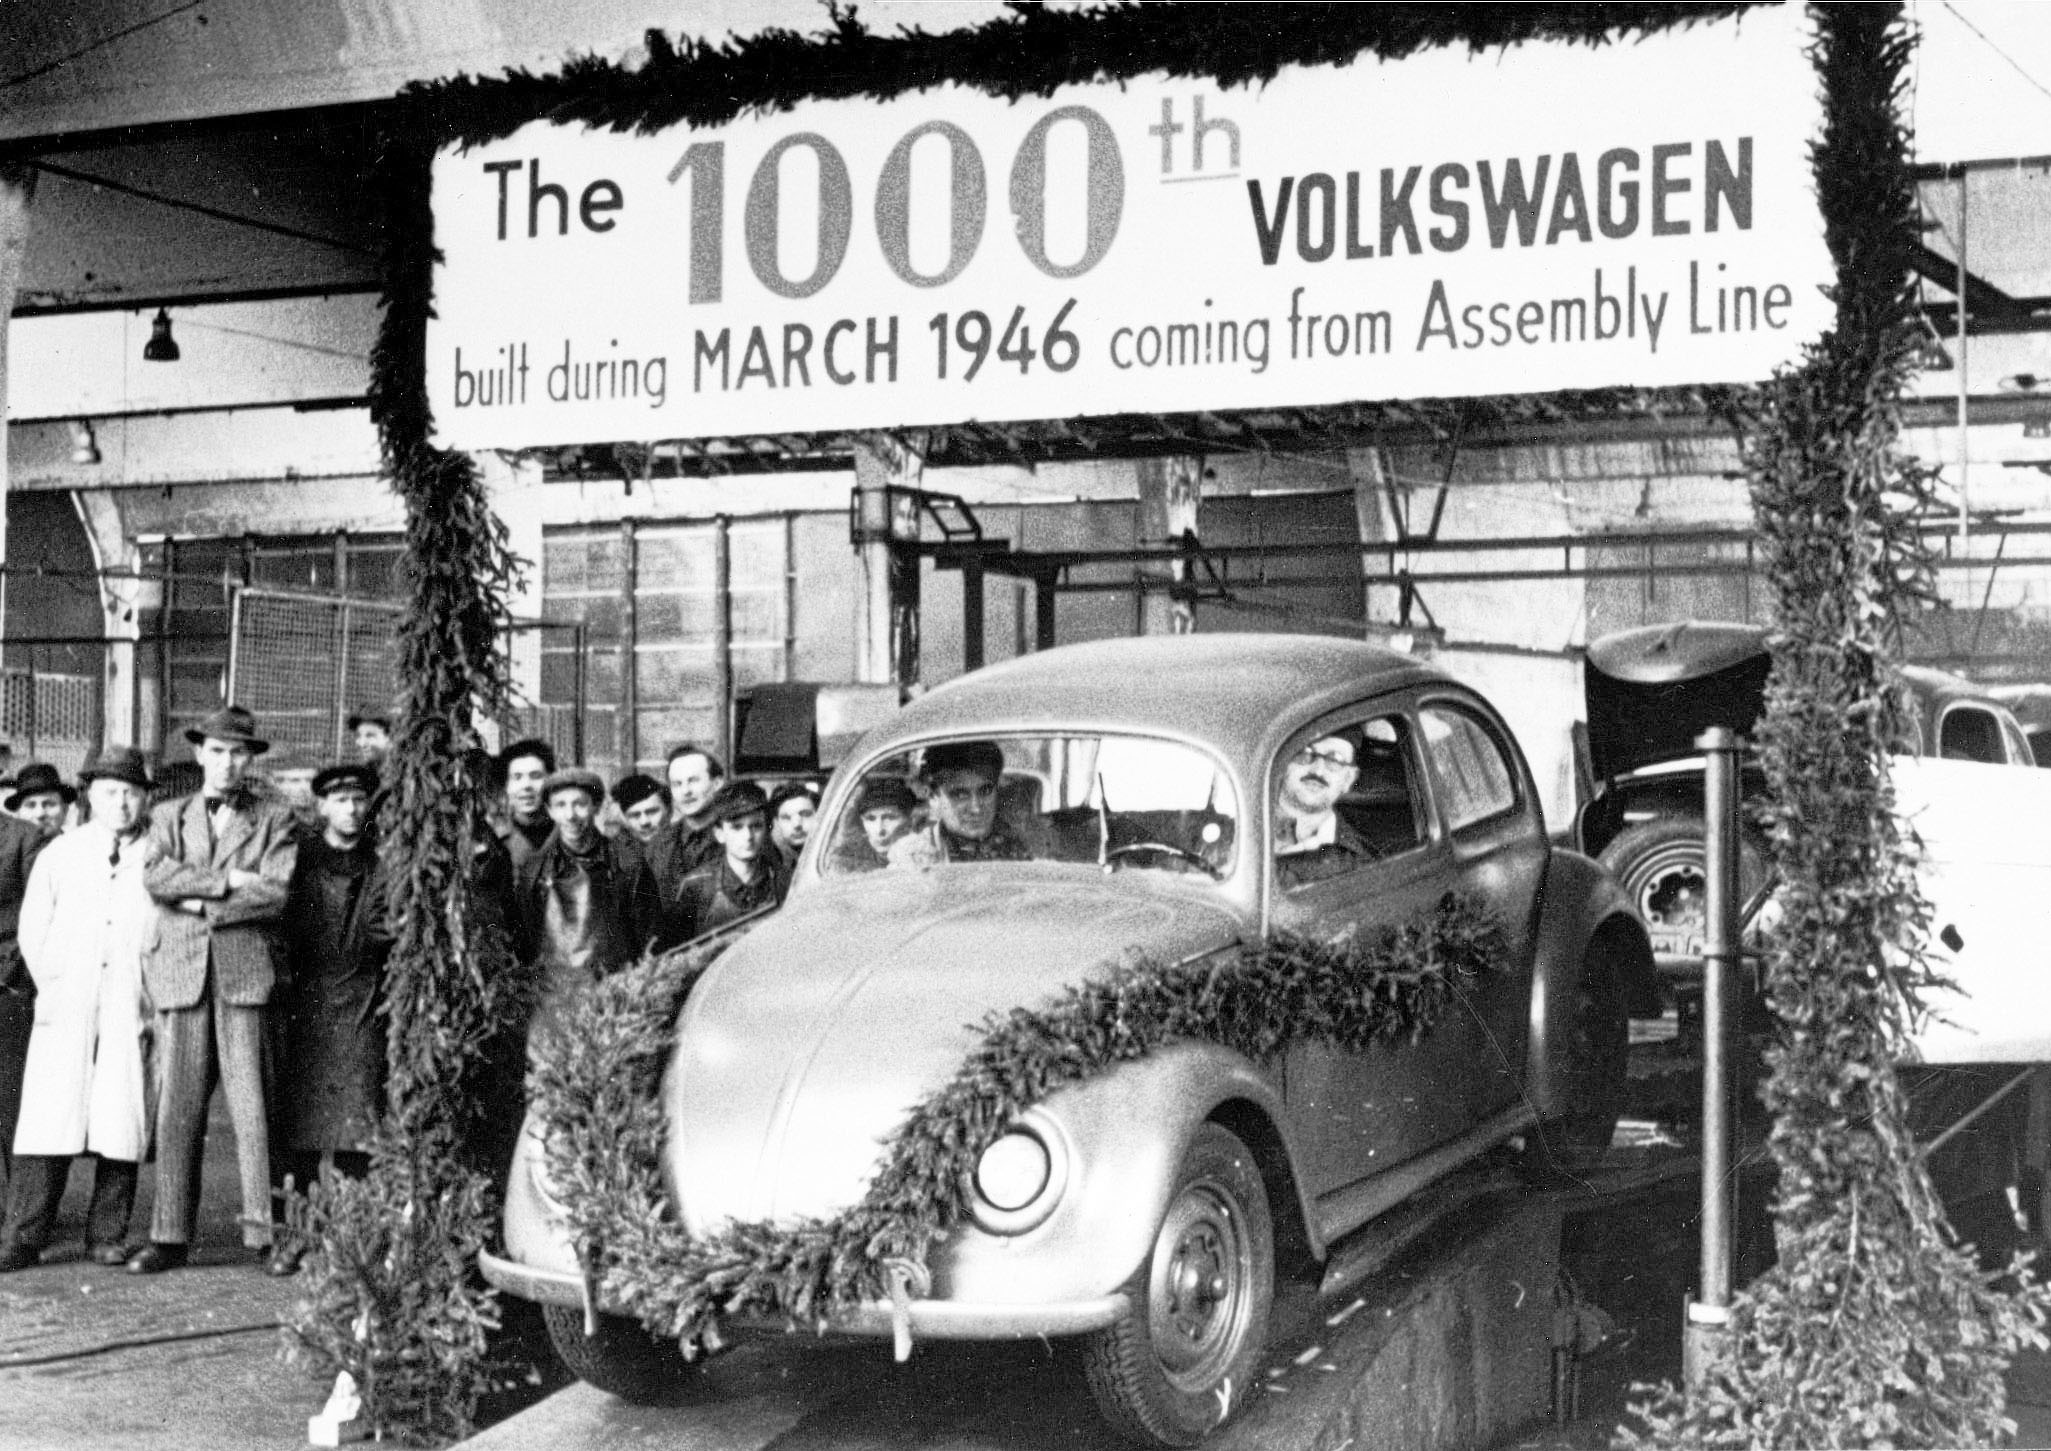 British take over Volkswagen 1945 - Production